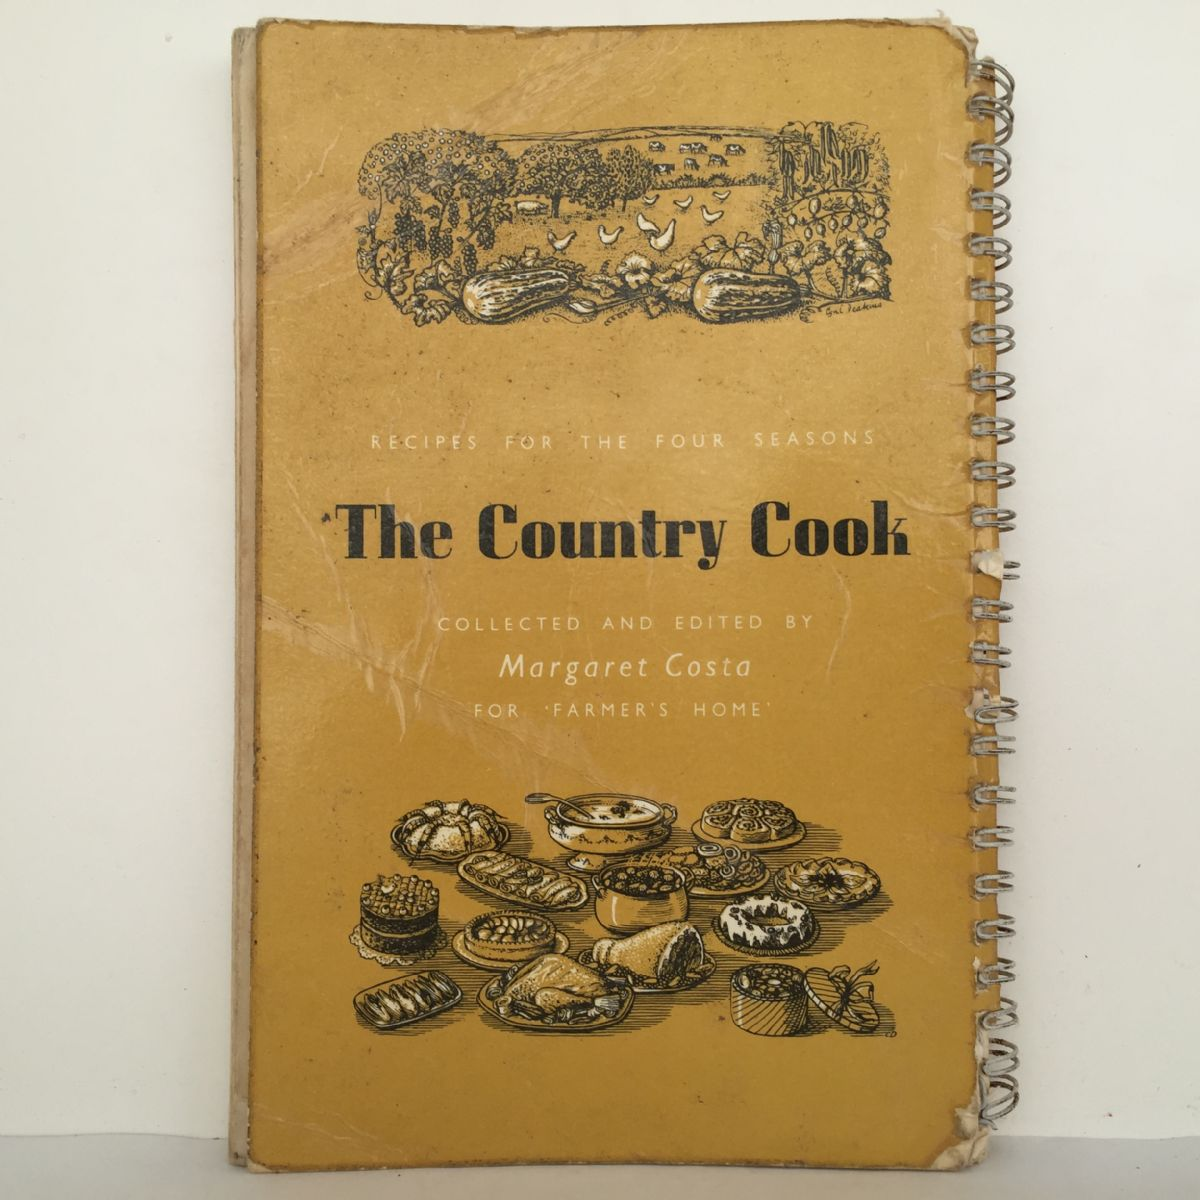 The Country Cook: Recipes for the Four Seasons